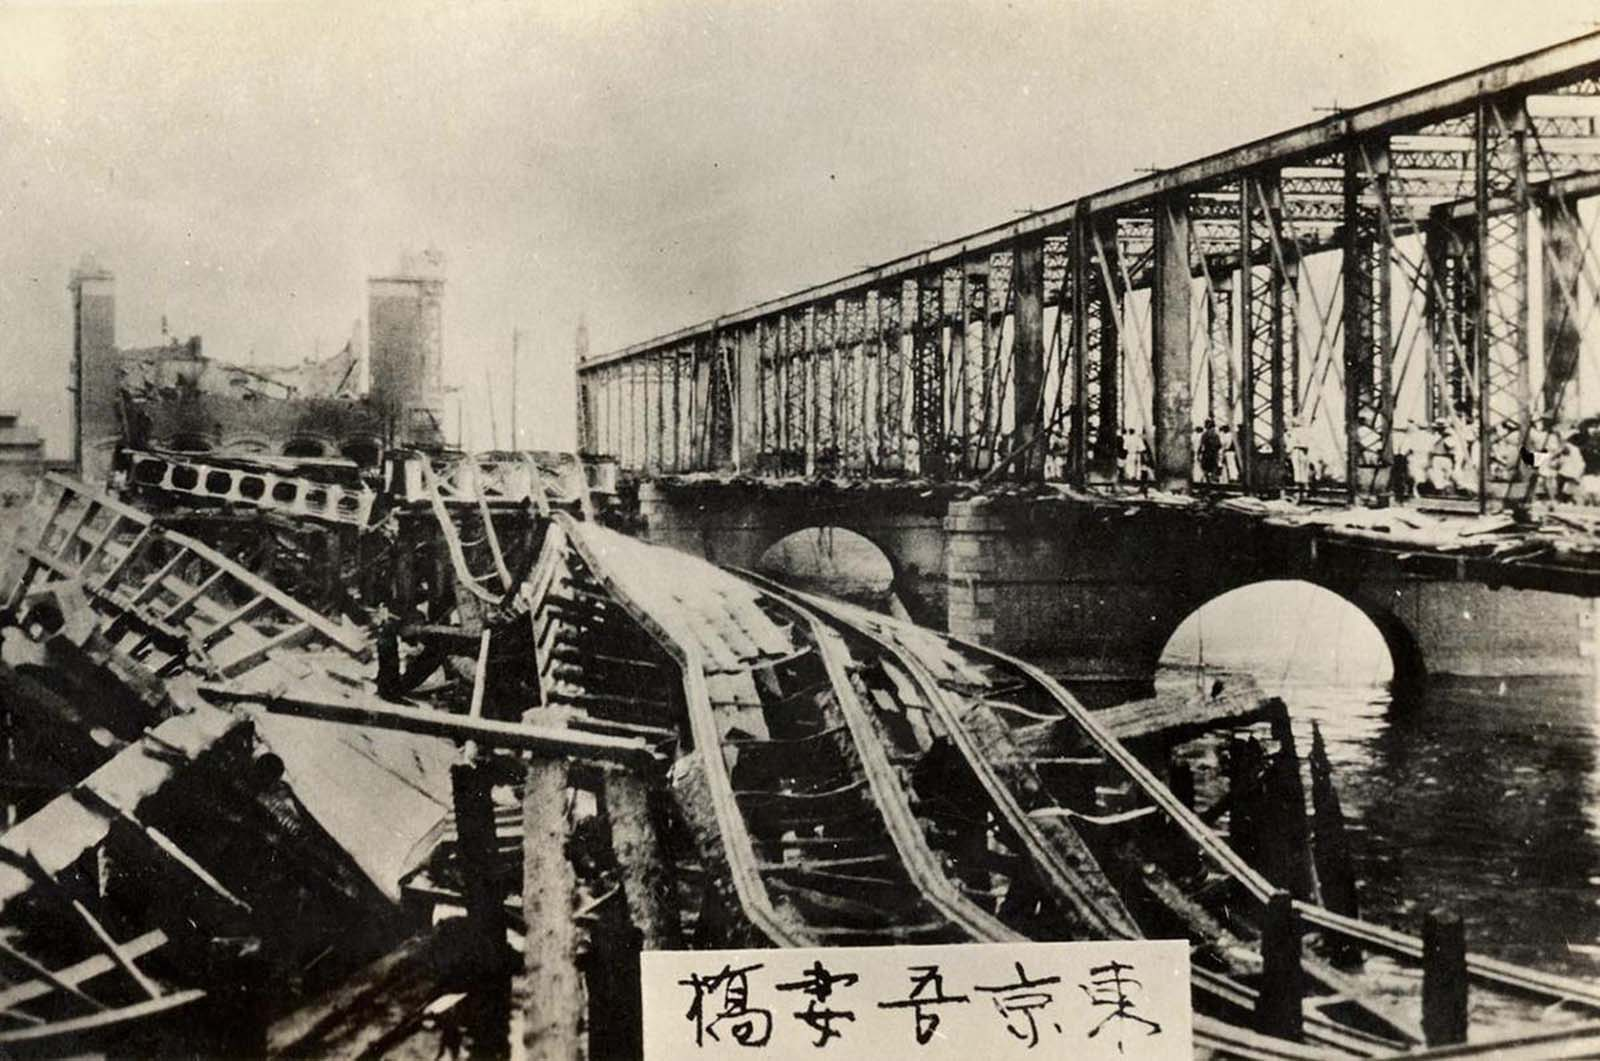 Collapsed Remains of the Azuma Bridge on the Sumida River. The wooden floor of the bridge burned down during the fires caused by the earthquake, leaving only the metal supports